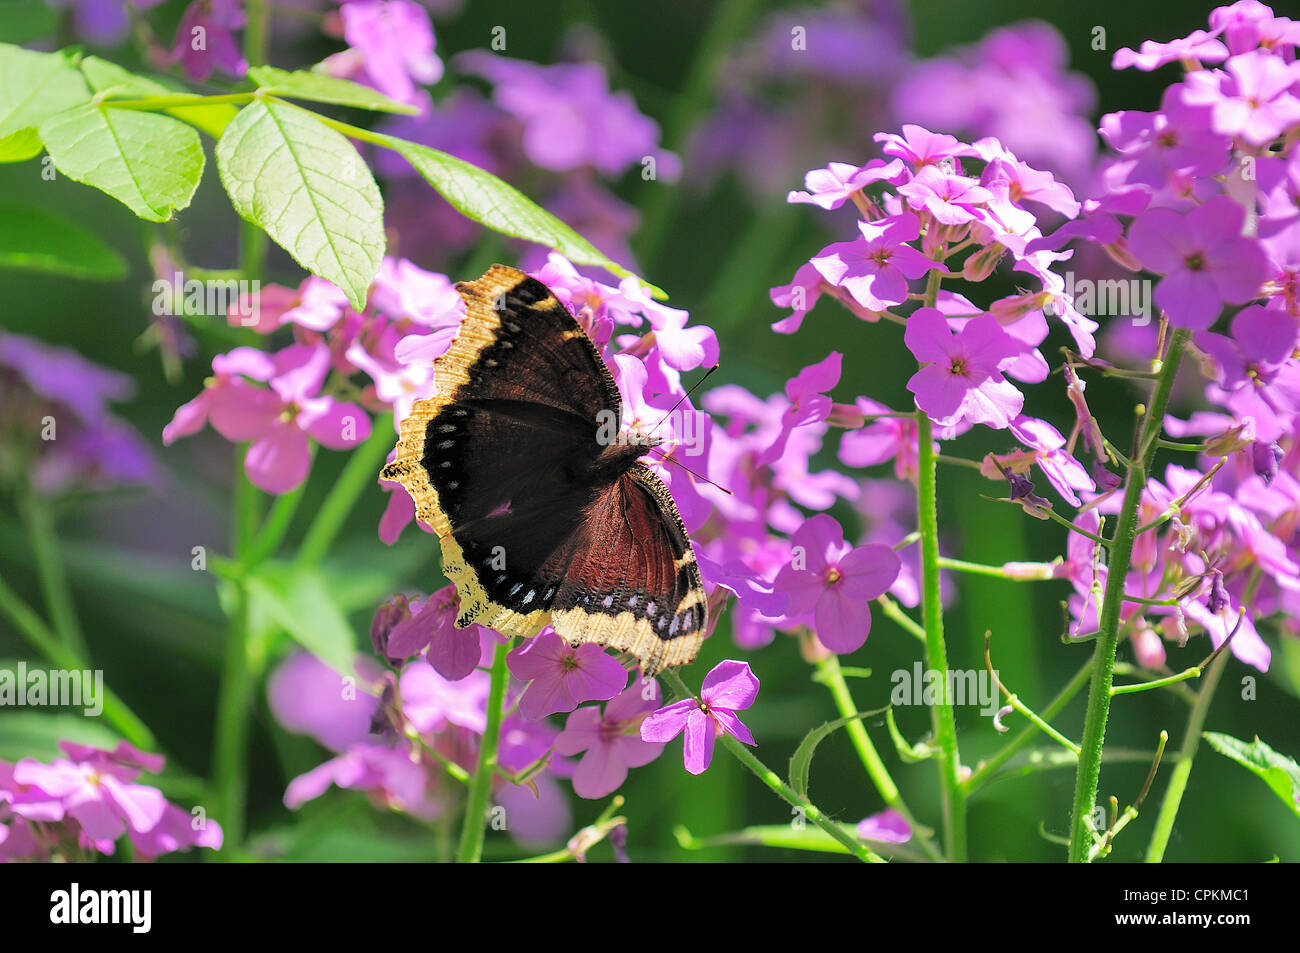 A Morning Cloak butterfly feeding from Flocks. - Stock Image